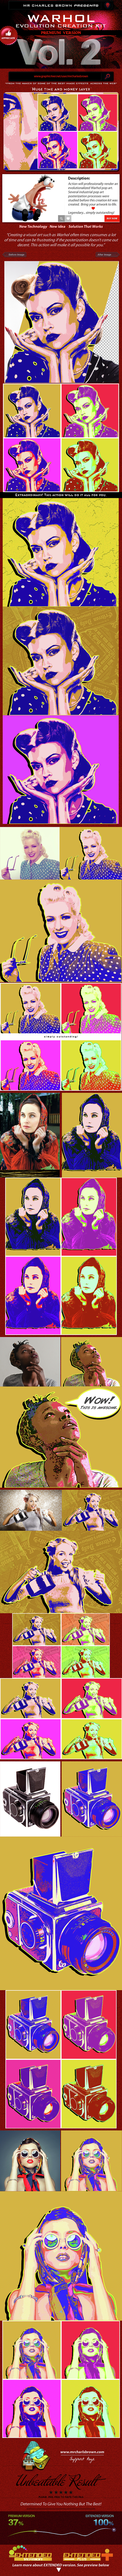 Warhol Evolution Creation Kit v2 - Photo Effects Actions